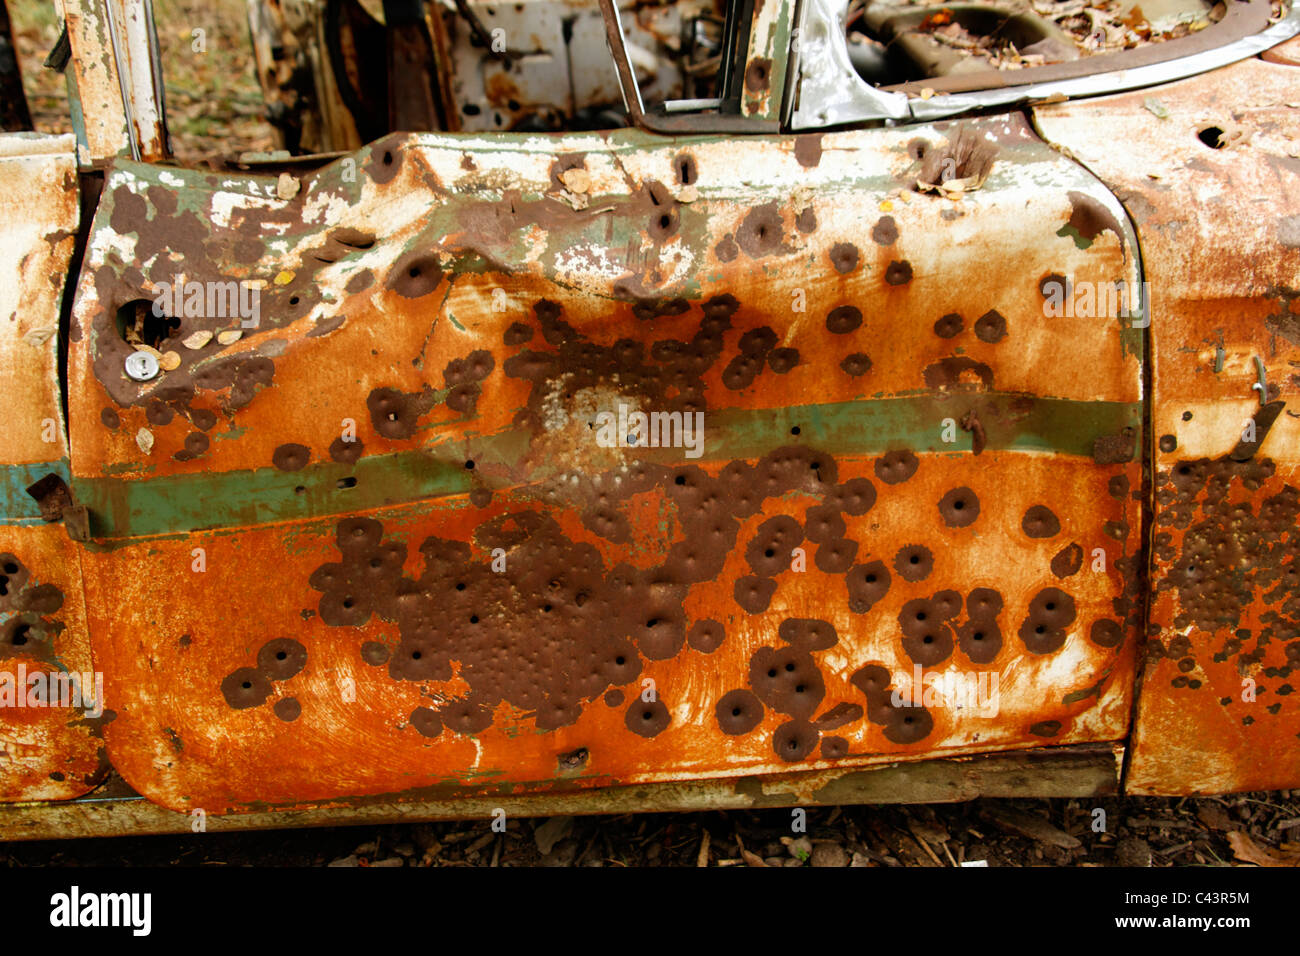 old car, door, riddled with bullet holes, rusted, rusty, target practice, waste, garbage - Stock Image